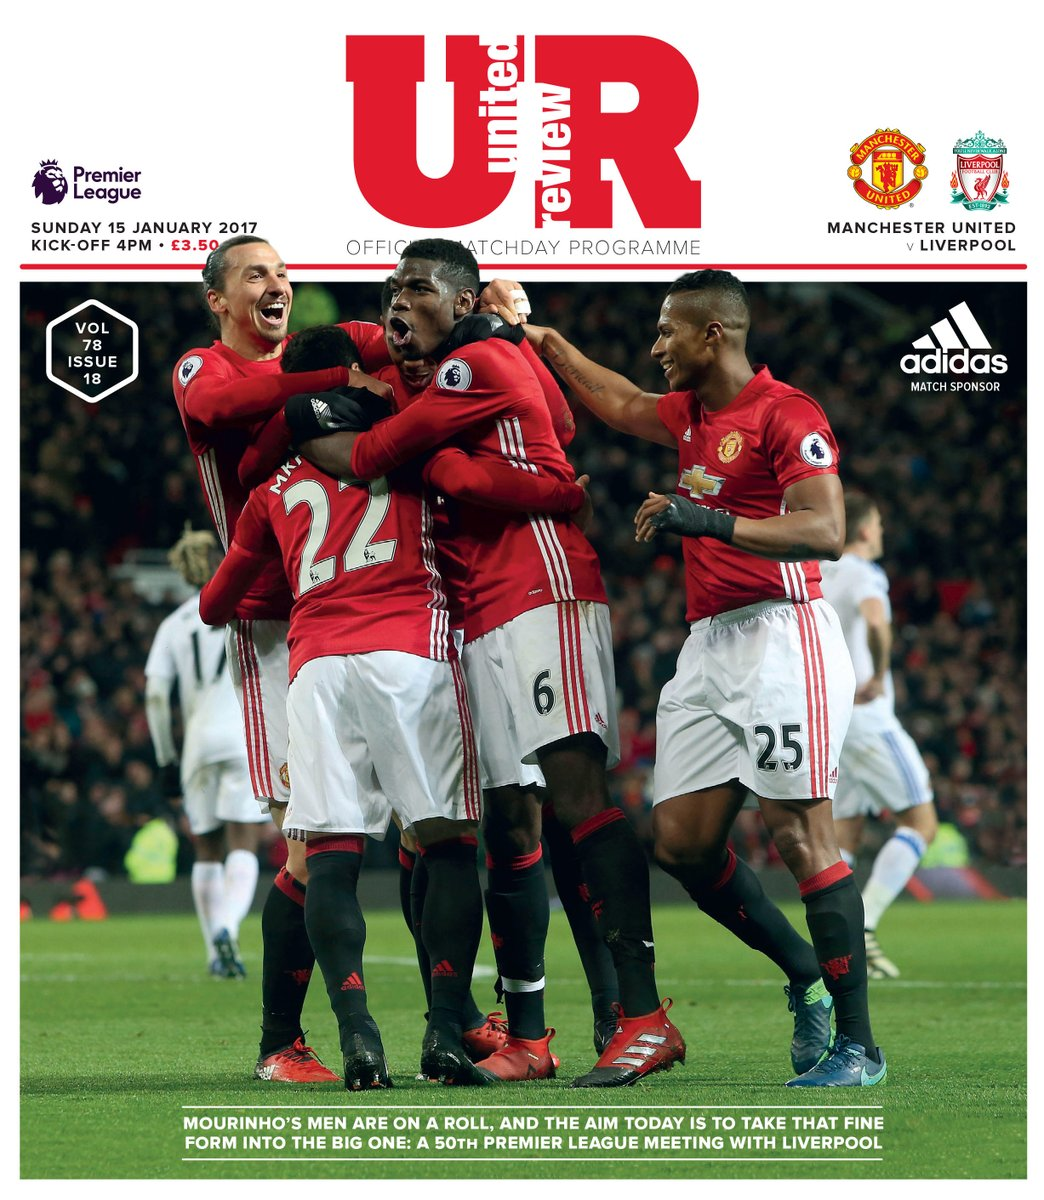 Manchester United: NBC Posts Impressive Viewing Numbers For Manchester United